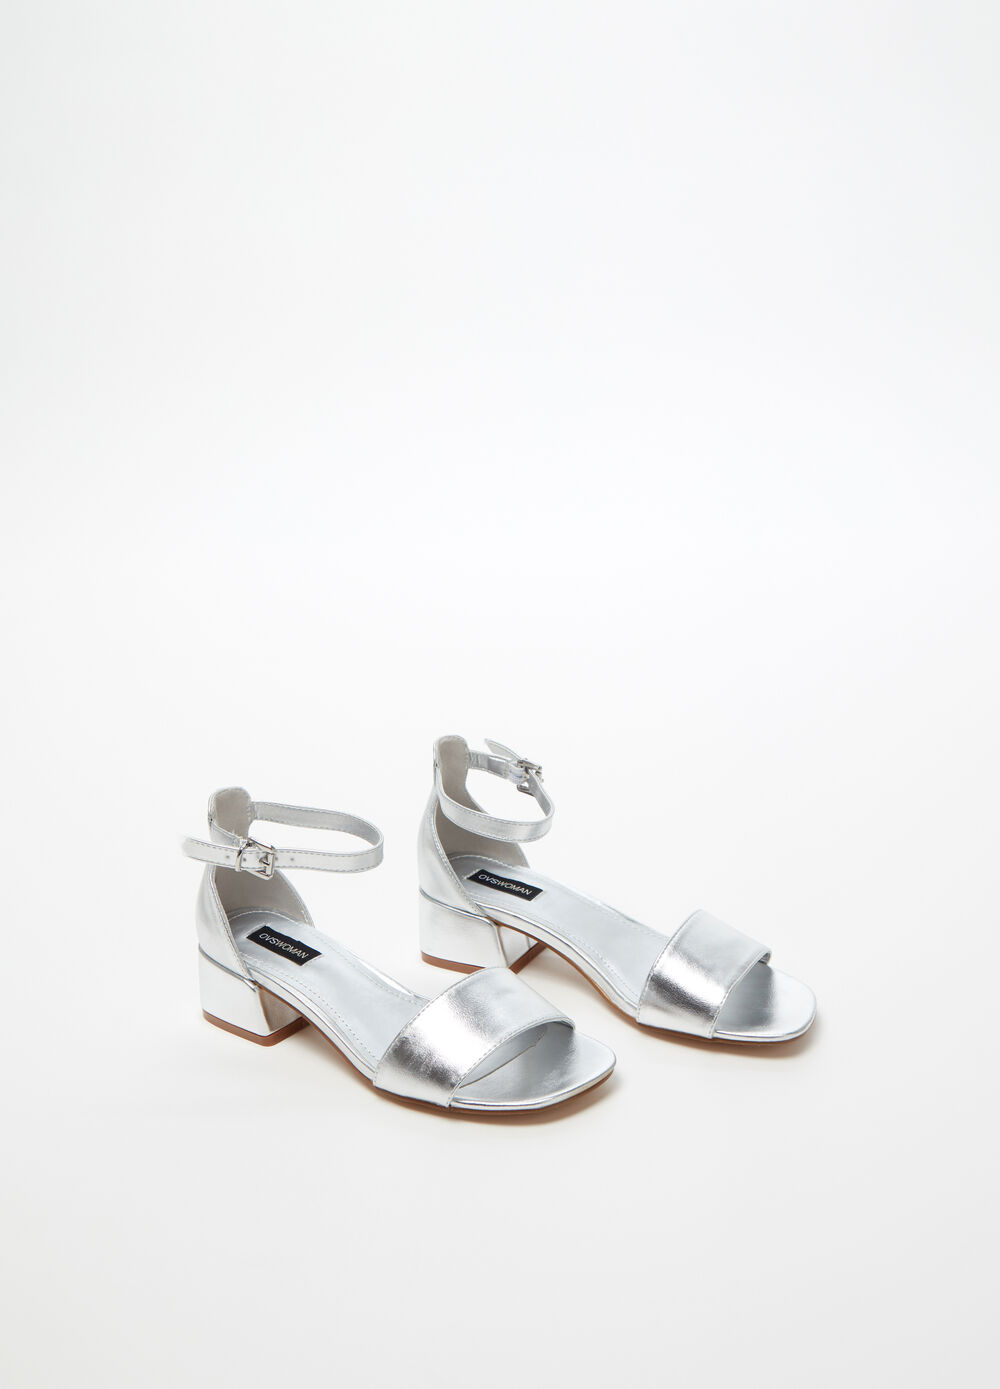 Sandal with metallic silver band and strap